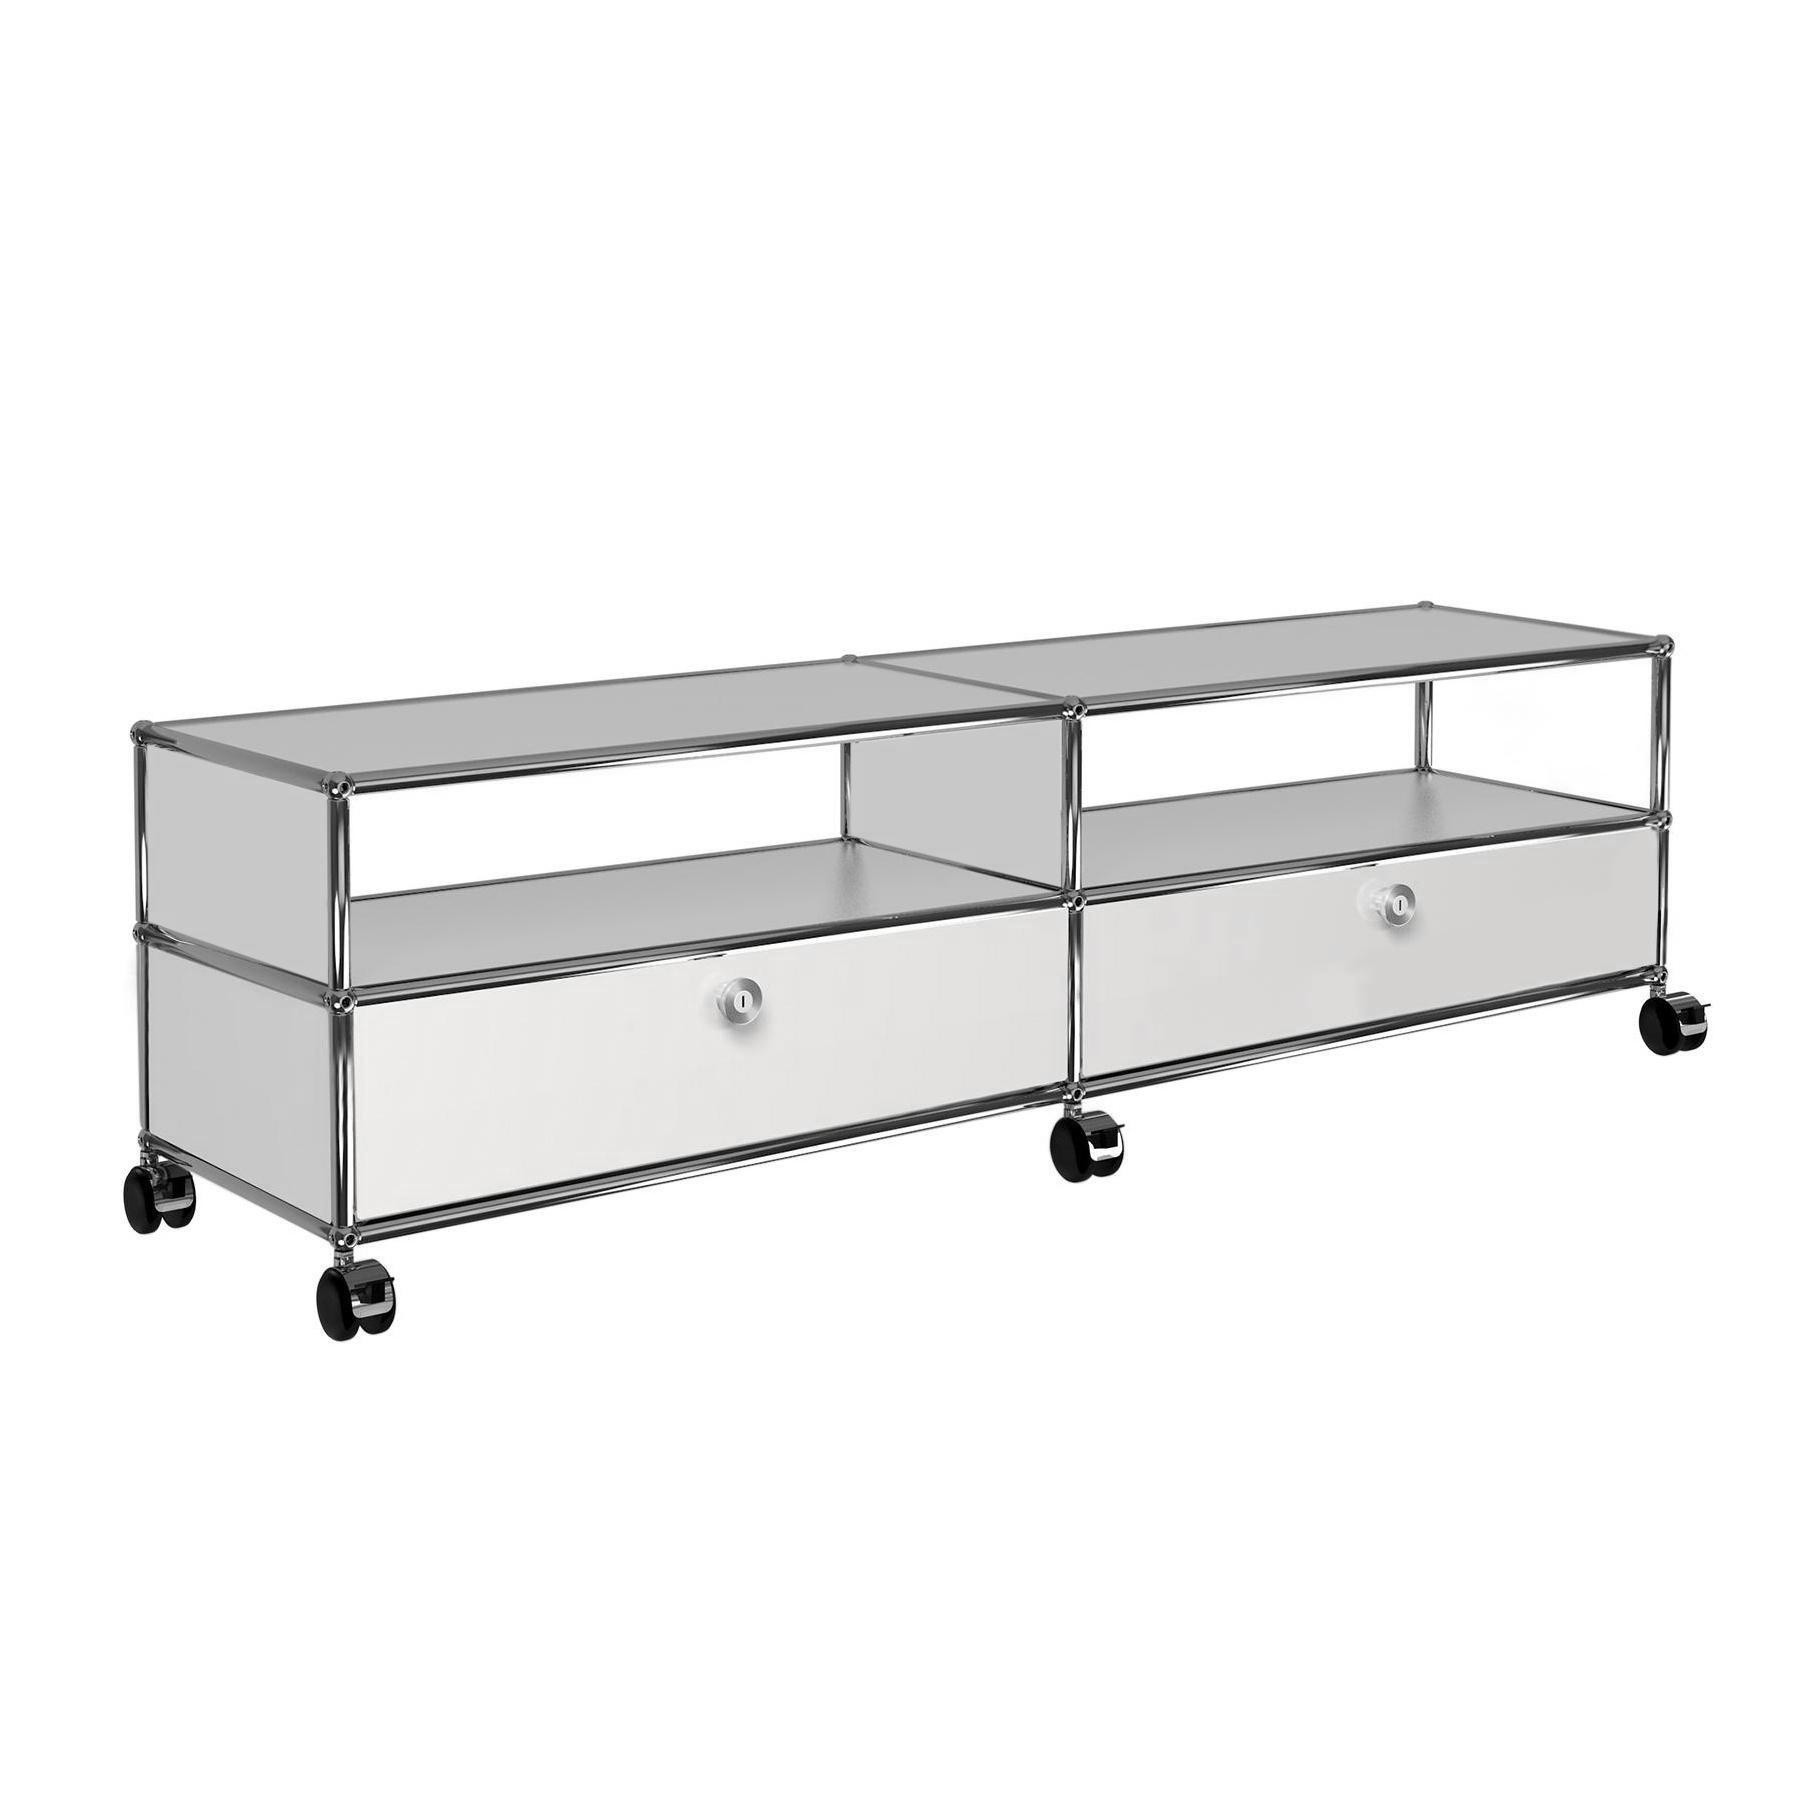 Tv Rack Mit Rollen Usm Tv/hi-fi Sideboard With 2 Drawers | Ambientedirect